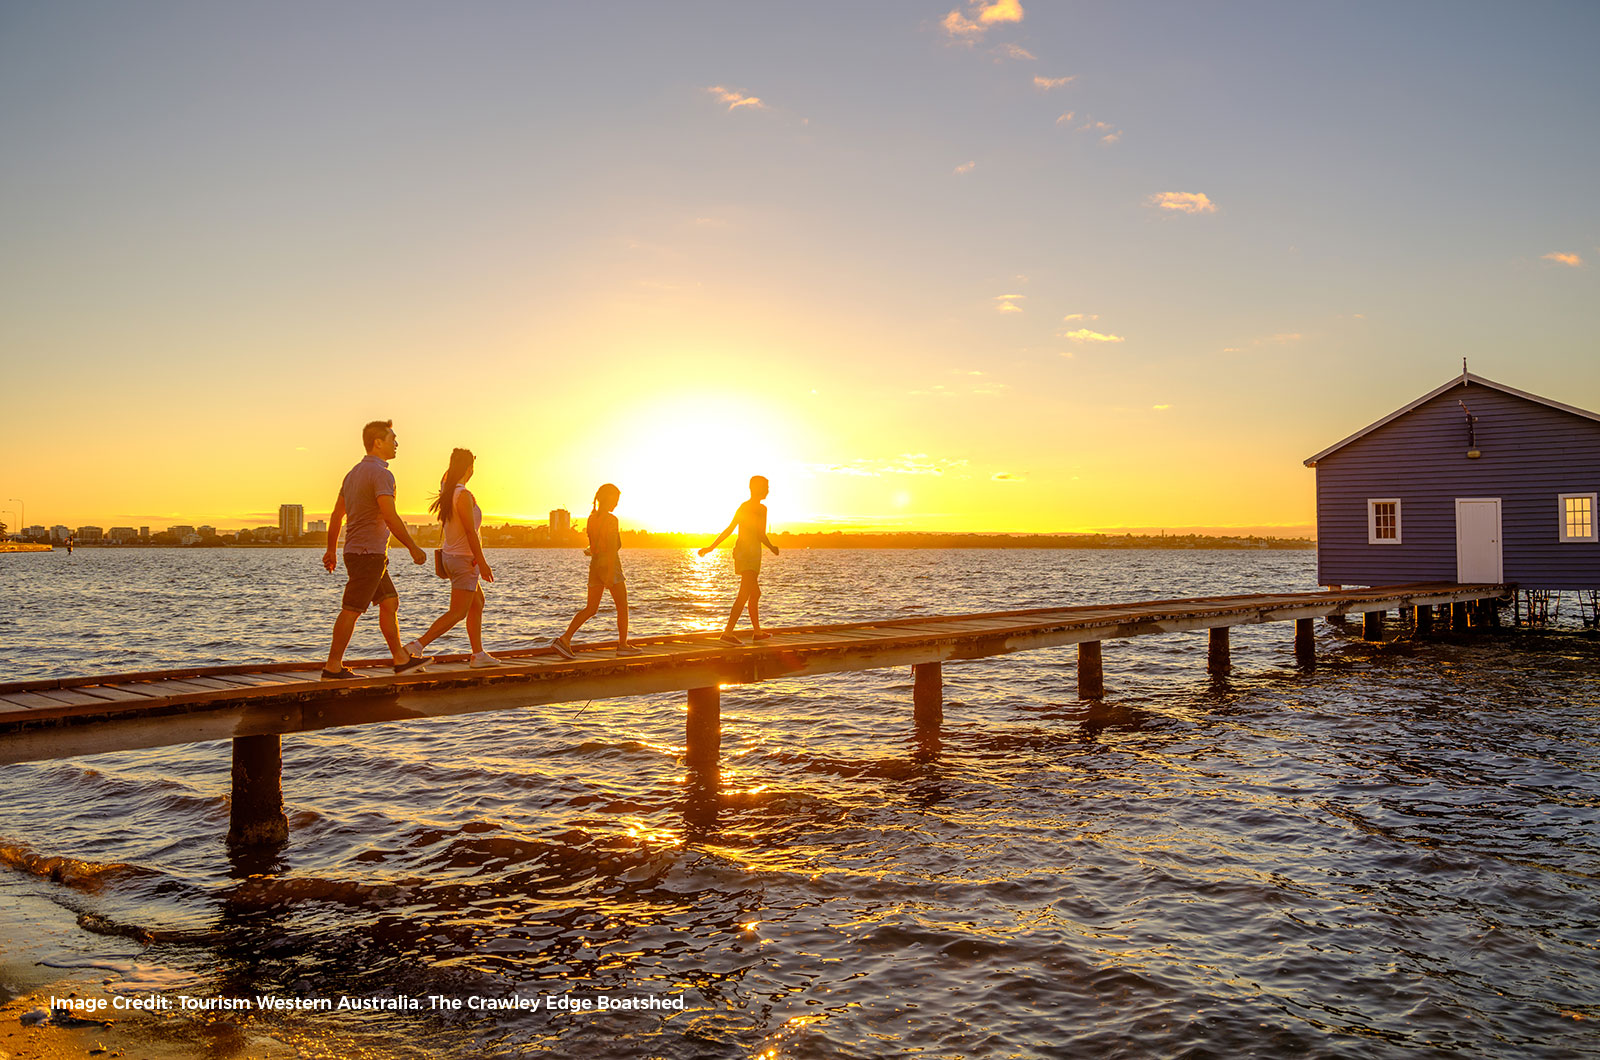 Sunset over Crawley Bay and the Swan River with a family walking on a wooden jetty